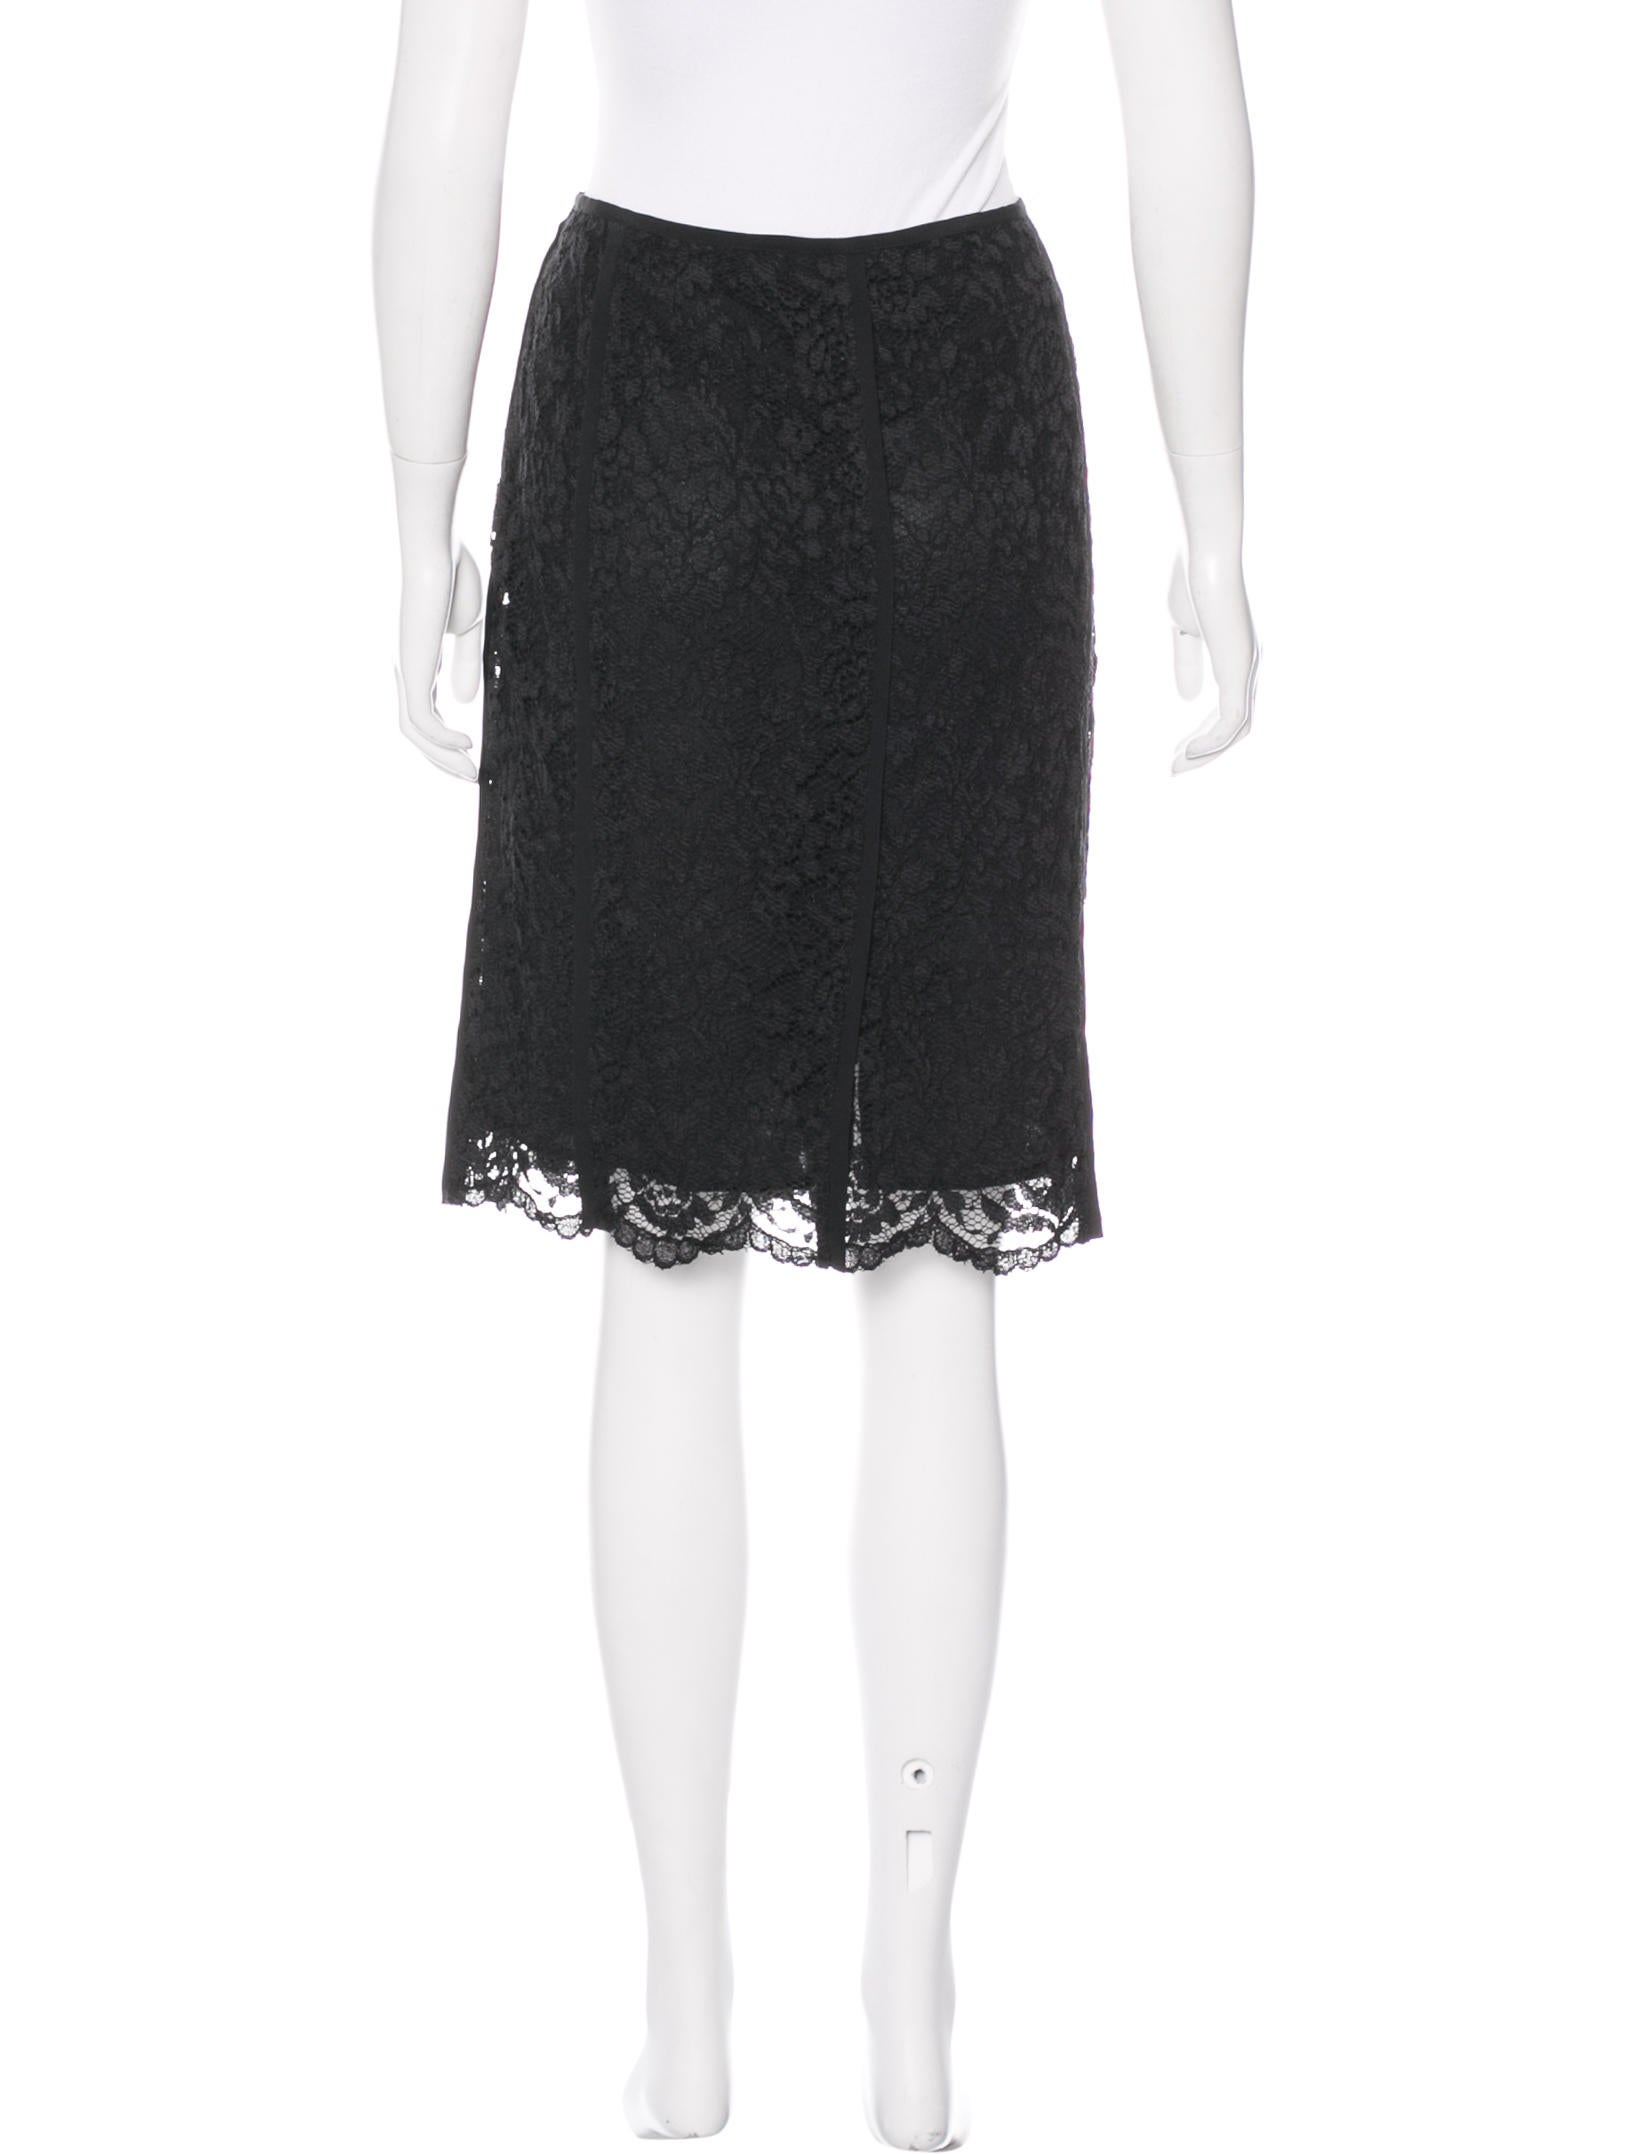 burch lace knee length skirt clothing wto84274